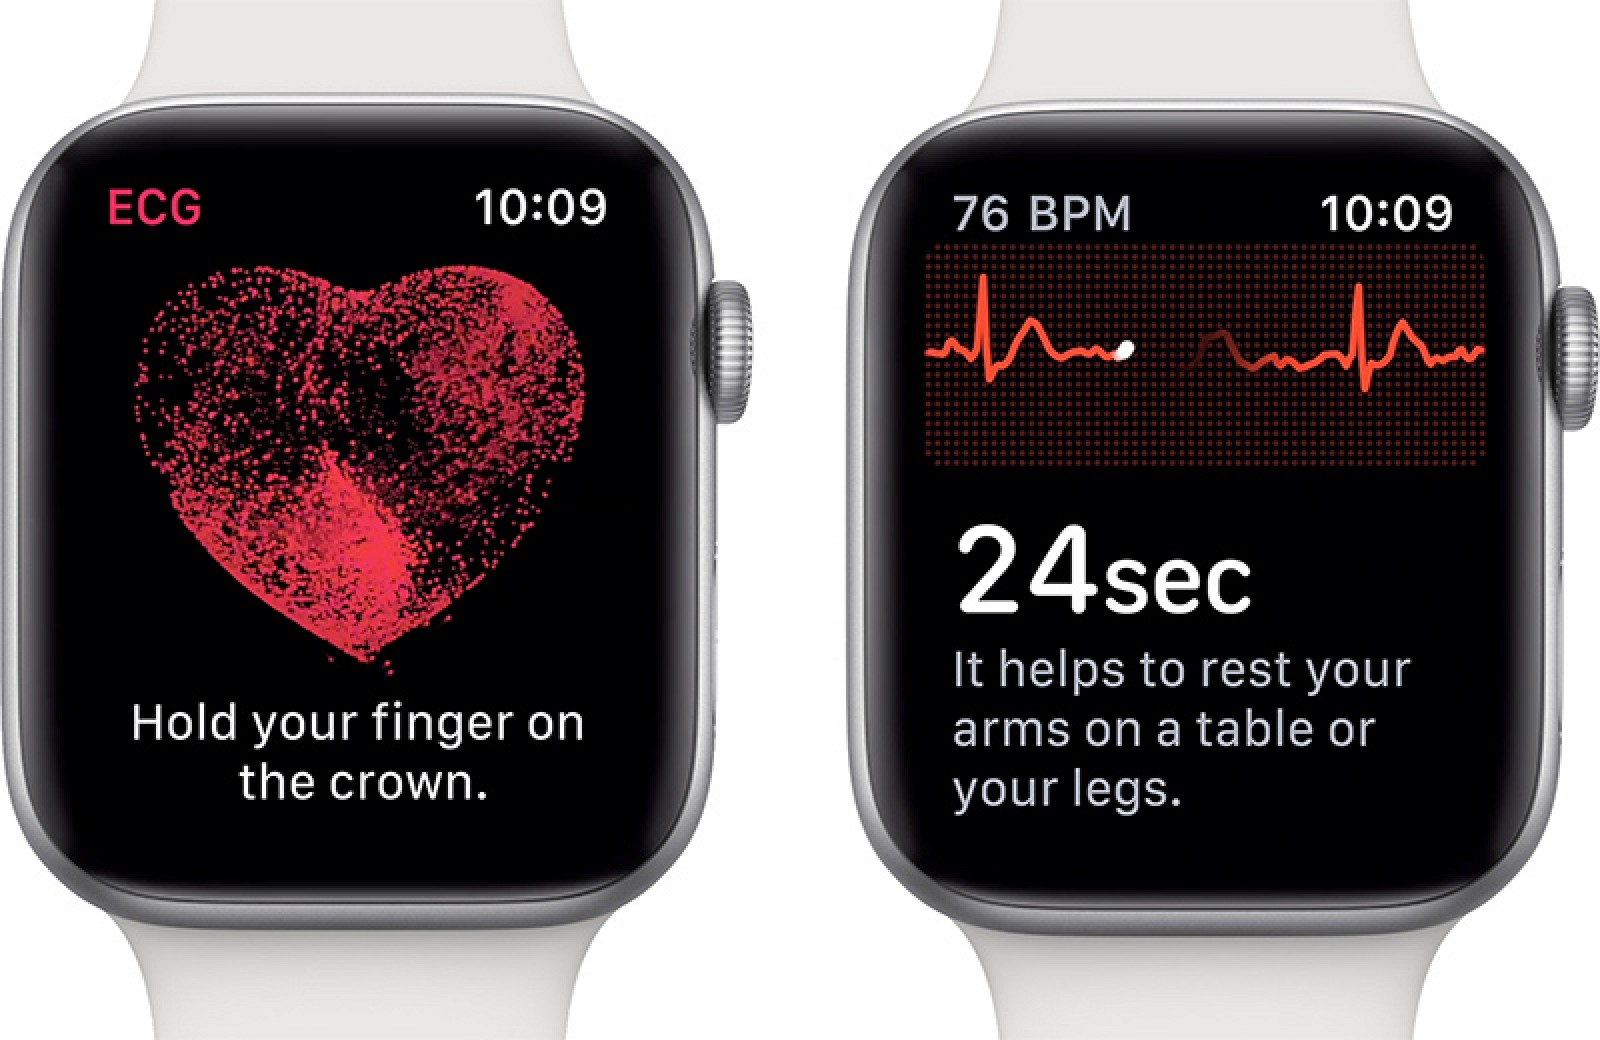 If you change the region of your Apple Watch or iPhone, the ECG app will not be activated outside of the United States